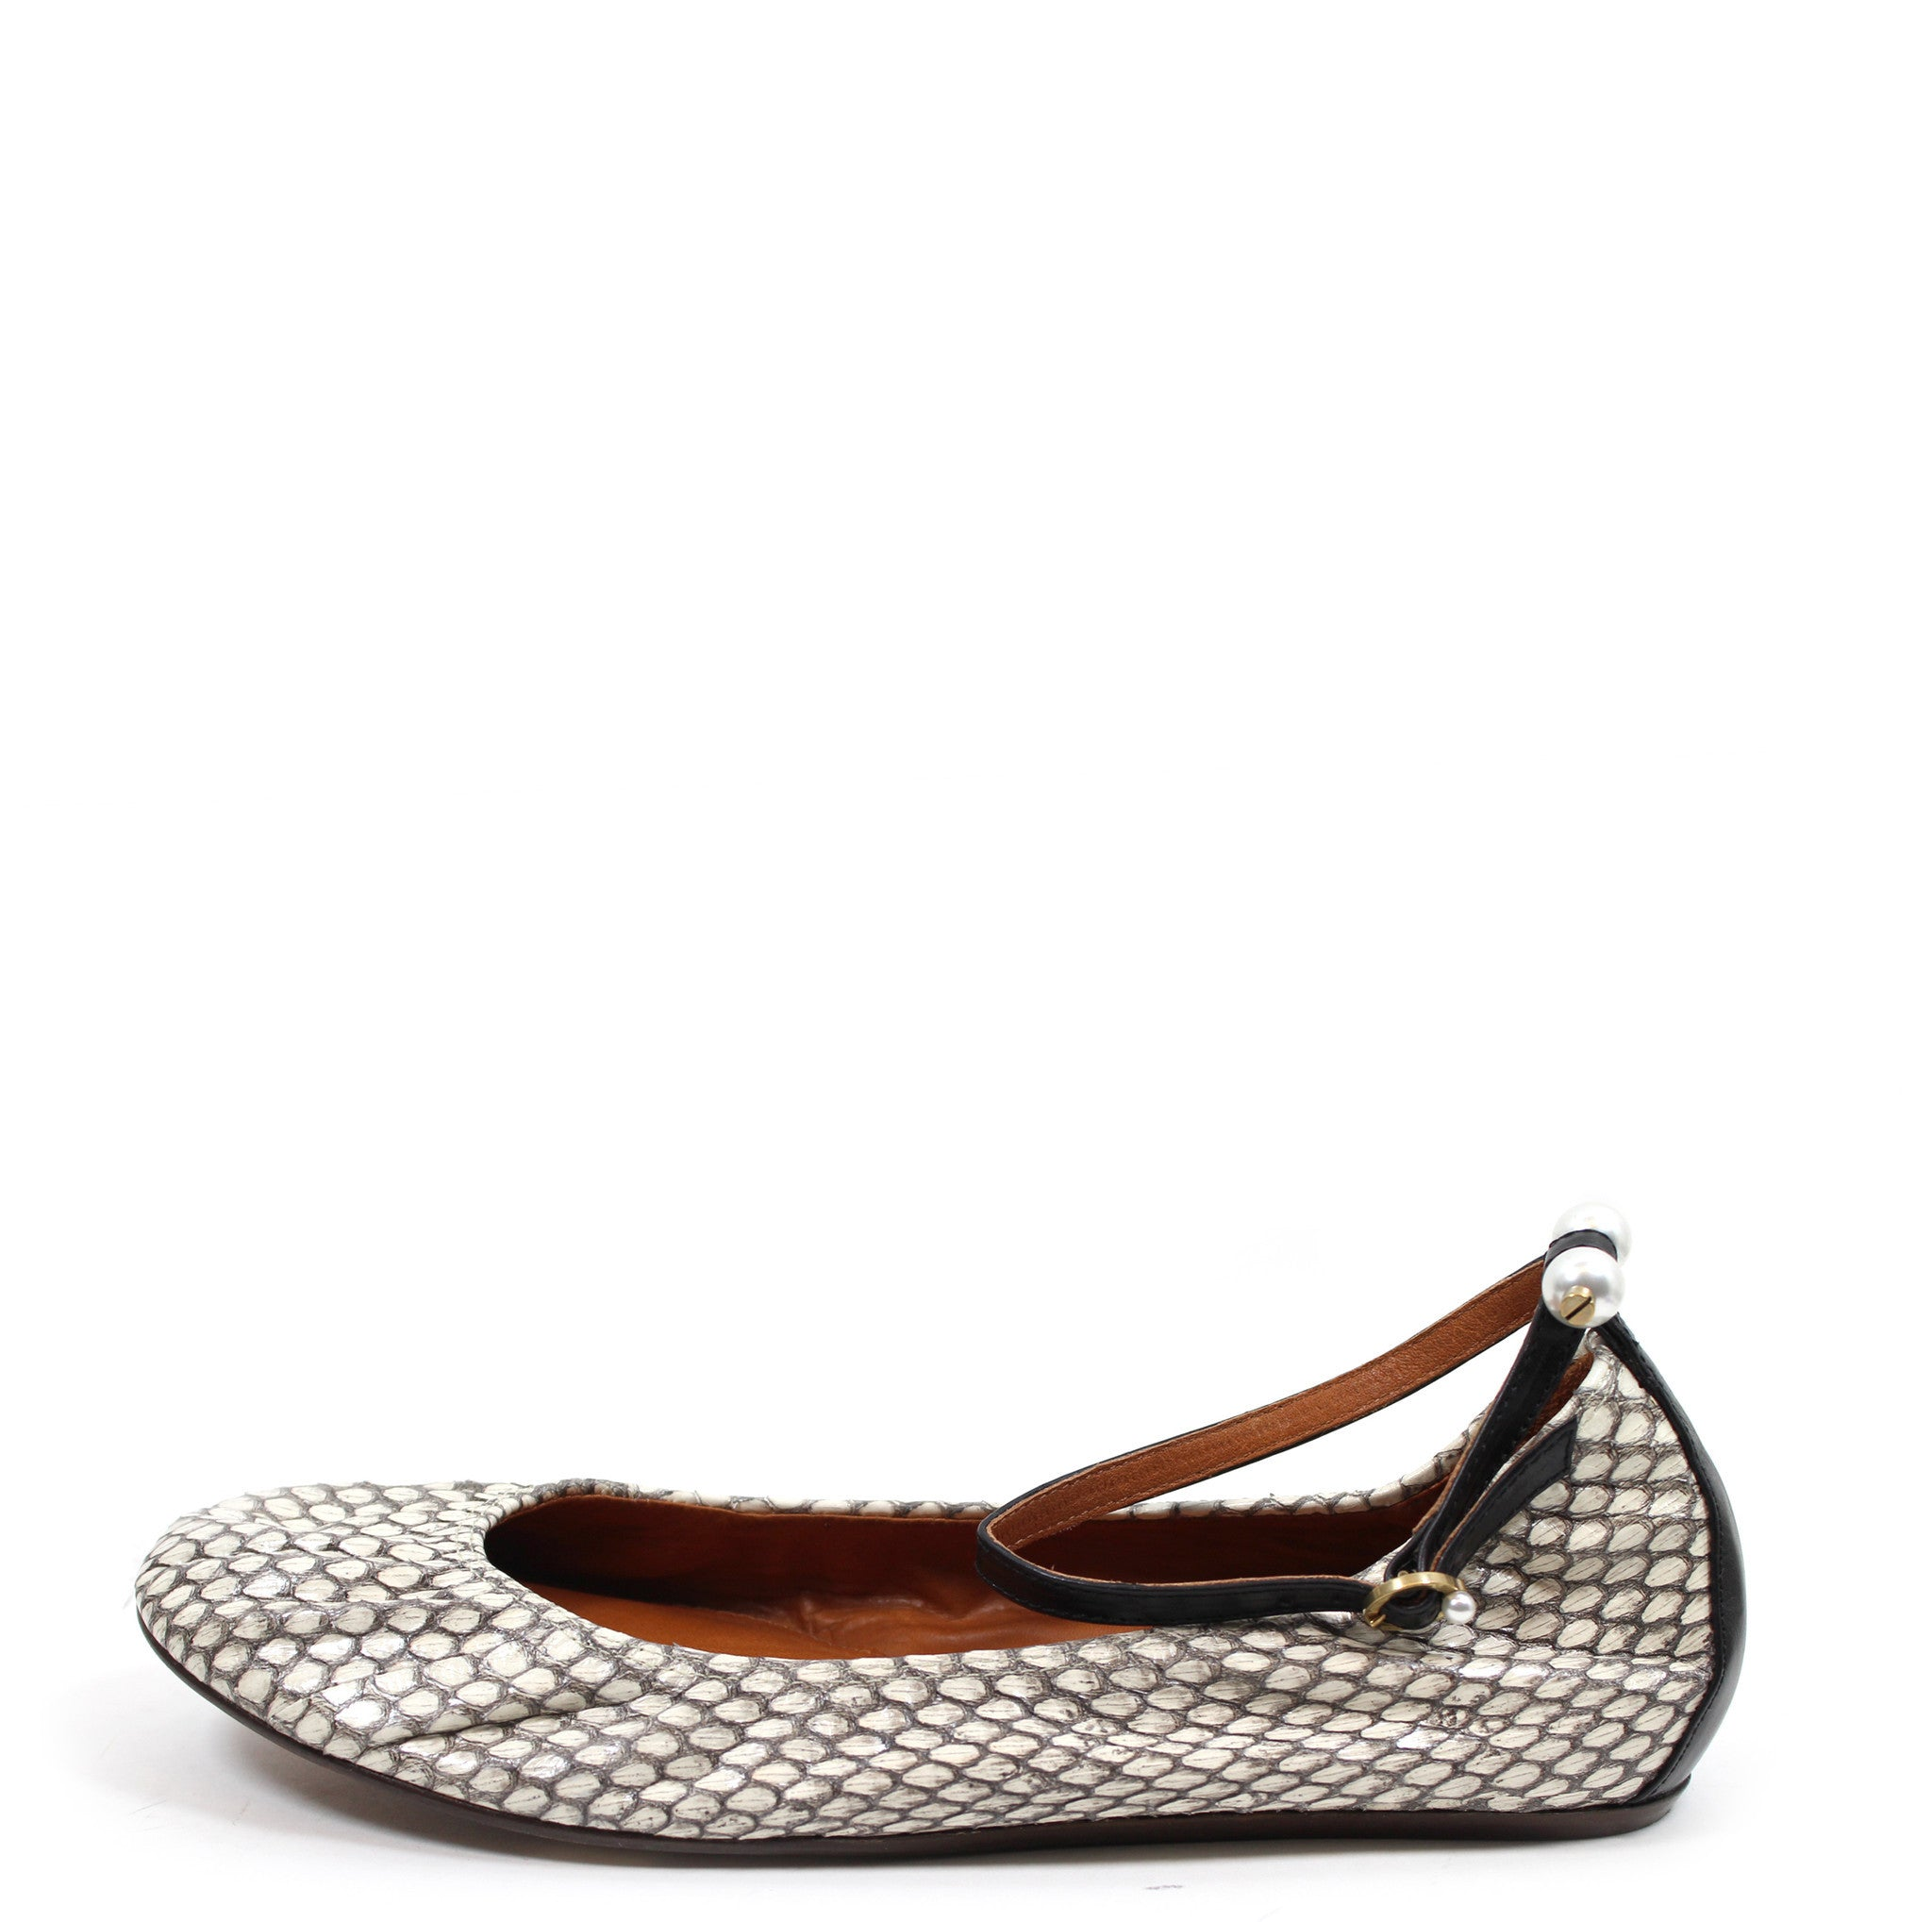 c9626c5b291 Lanvin Snakeskin Pearl Detail Ballet Flats w  Ankle Strap (Size 38.5) – Encore  Consignment